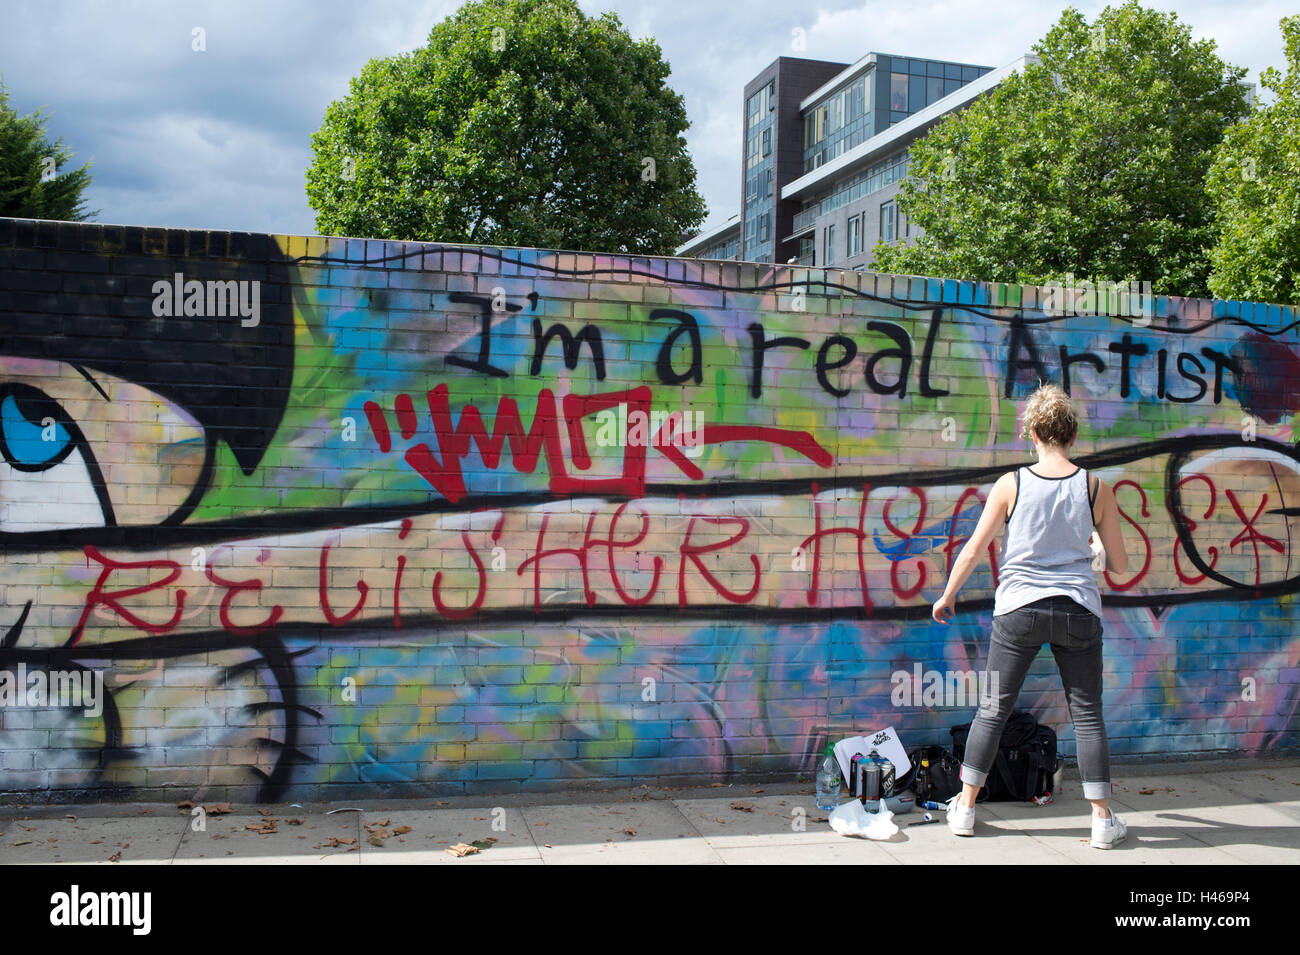 Hackney Wick. Woman painting on a wall - anti gentrification. - Stock Image